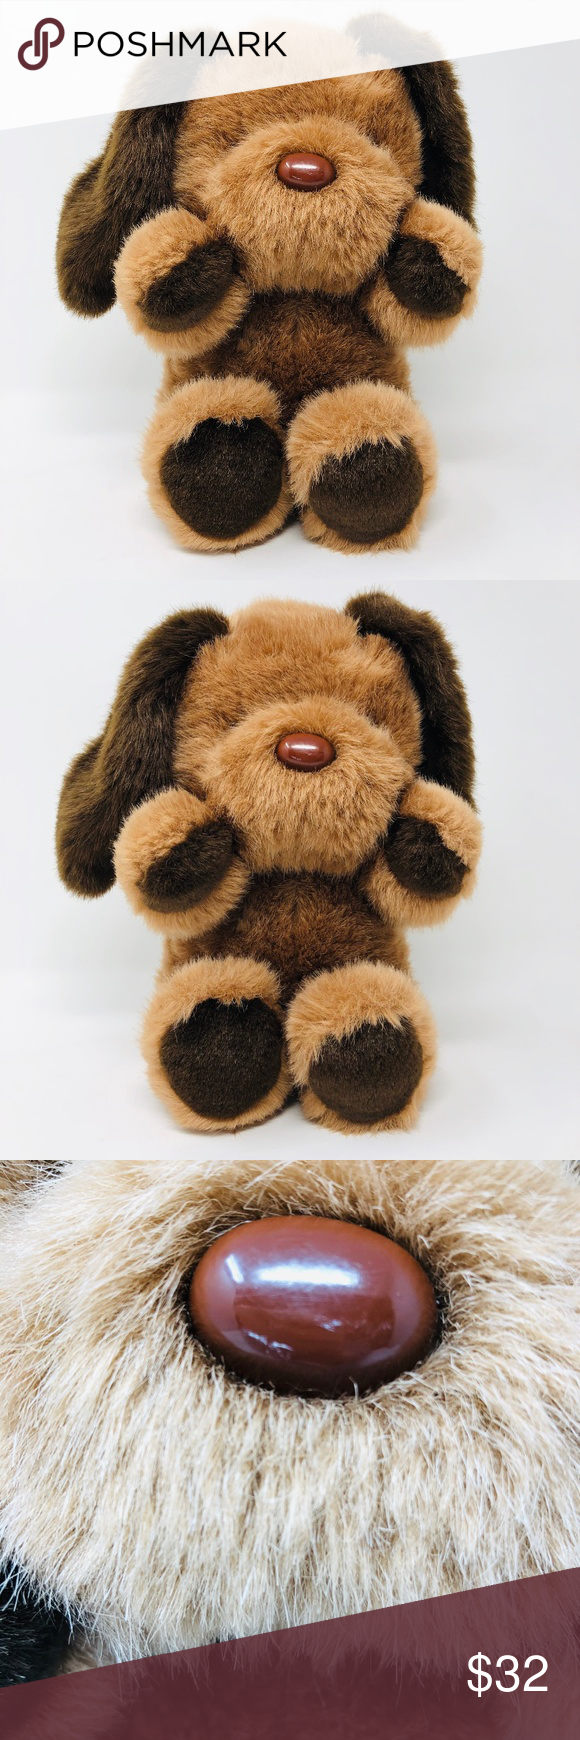 Vintage Fordlet Plush Puppy Dog Dogs And Puppies Puppies Plush [ 1740 x 580 Pixel ]